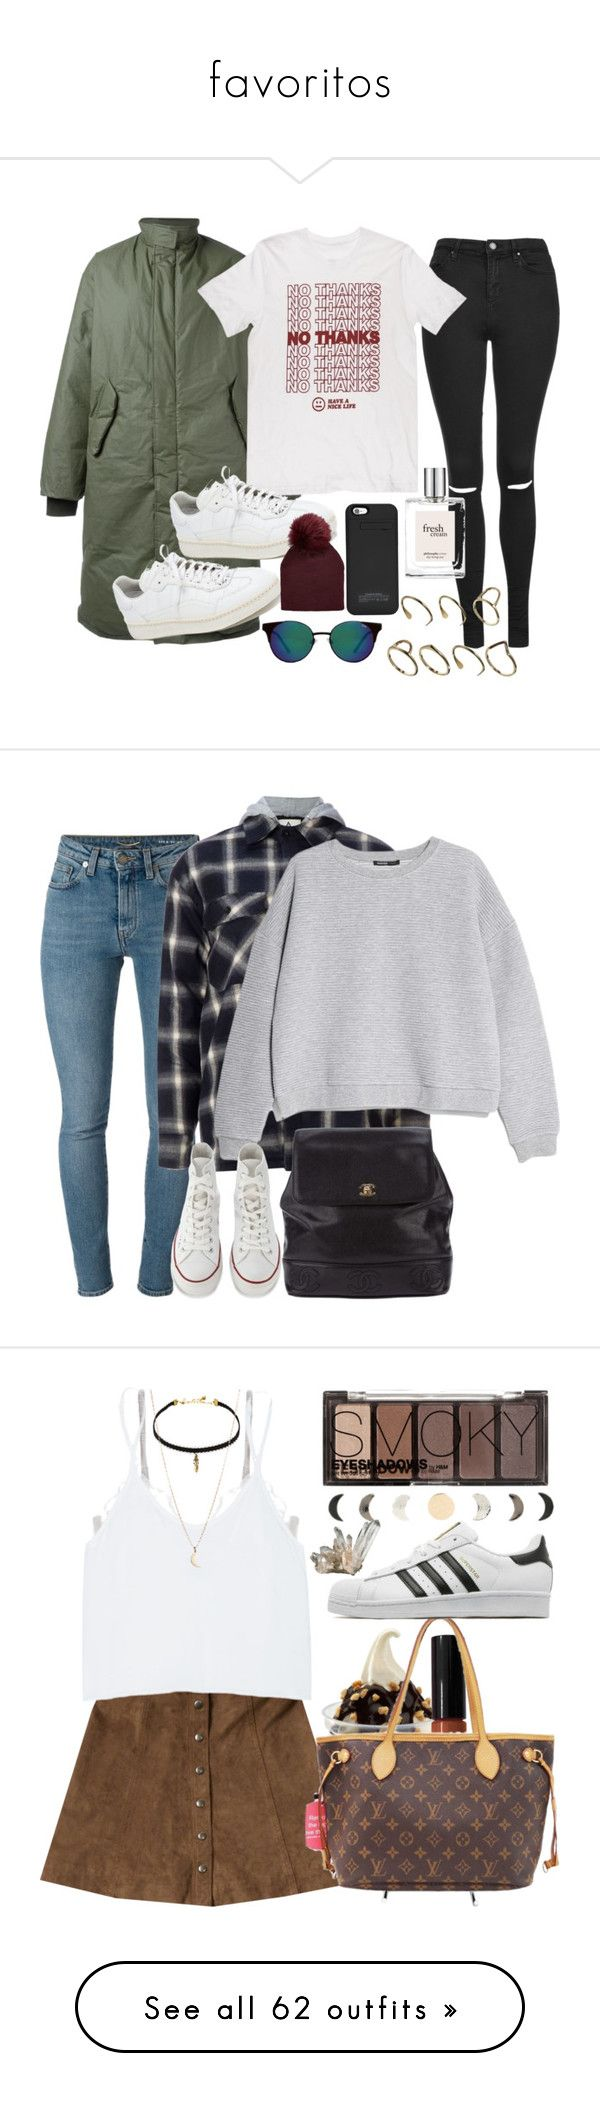 """""""favoritos"""" by andreamixd ❤ liked on Polyvore featuring adidas Originals, Topshop, Quay, ASOS, Alexander Wang, philosophy, Yves Saint Laurent, UNIF, MANGO and Converse"""